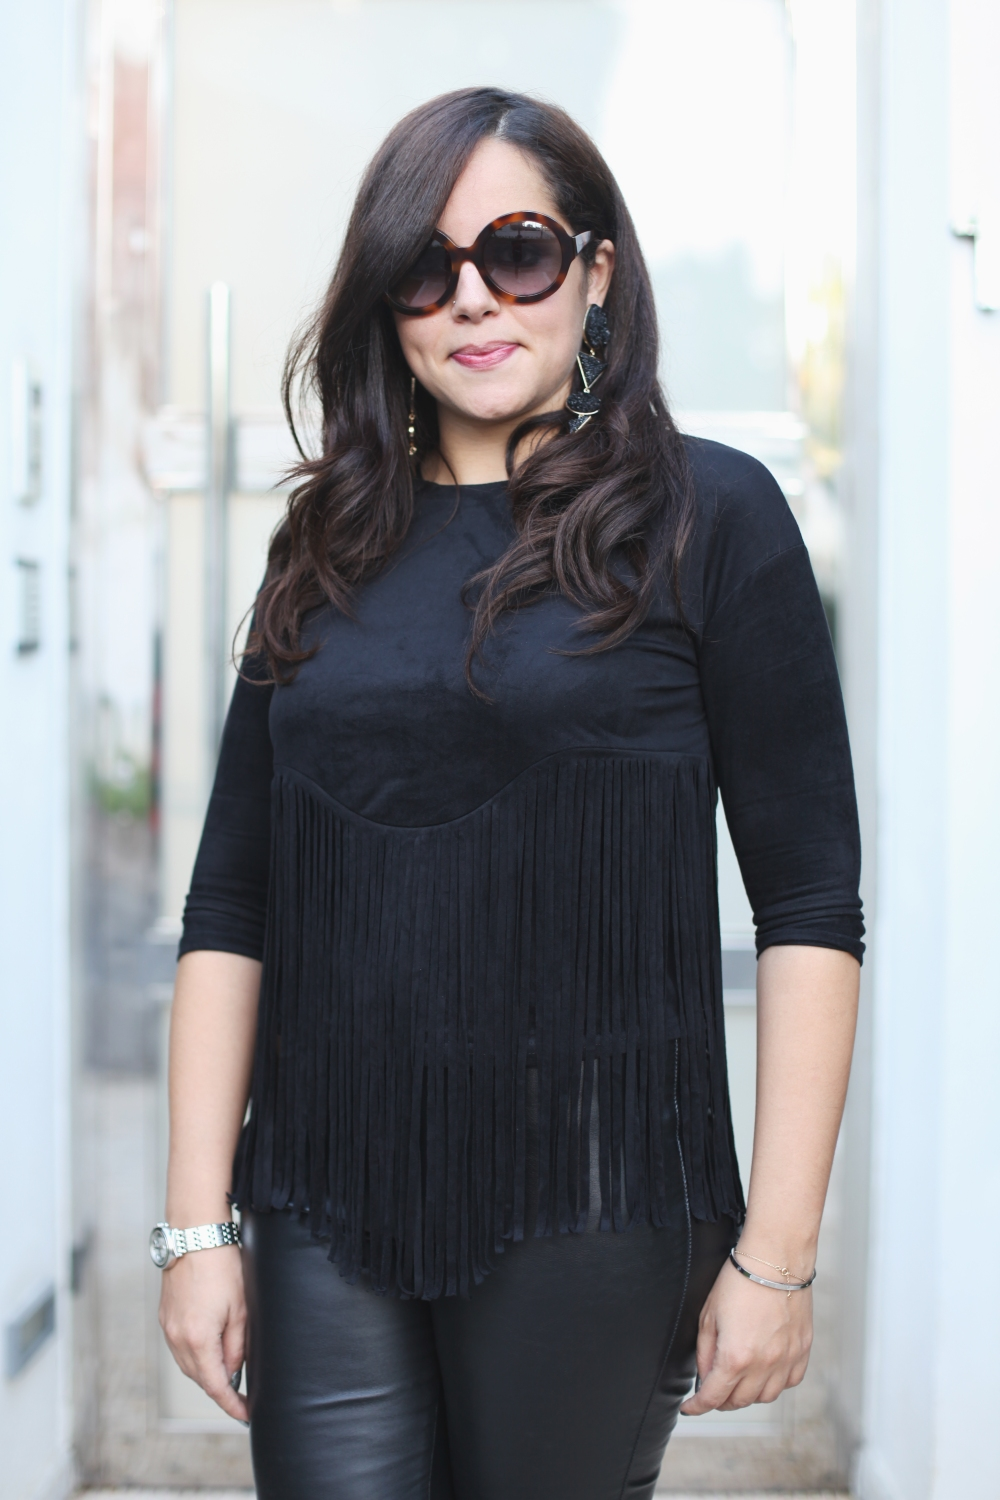 fun-in-fringe-chiccarpediem-blog-mode-6